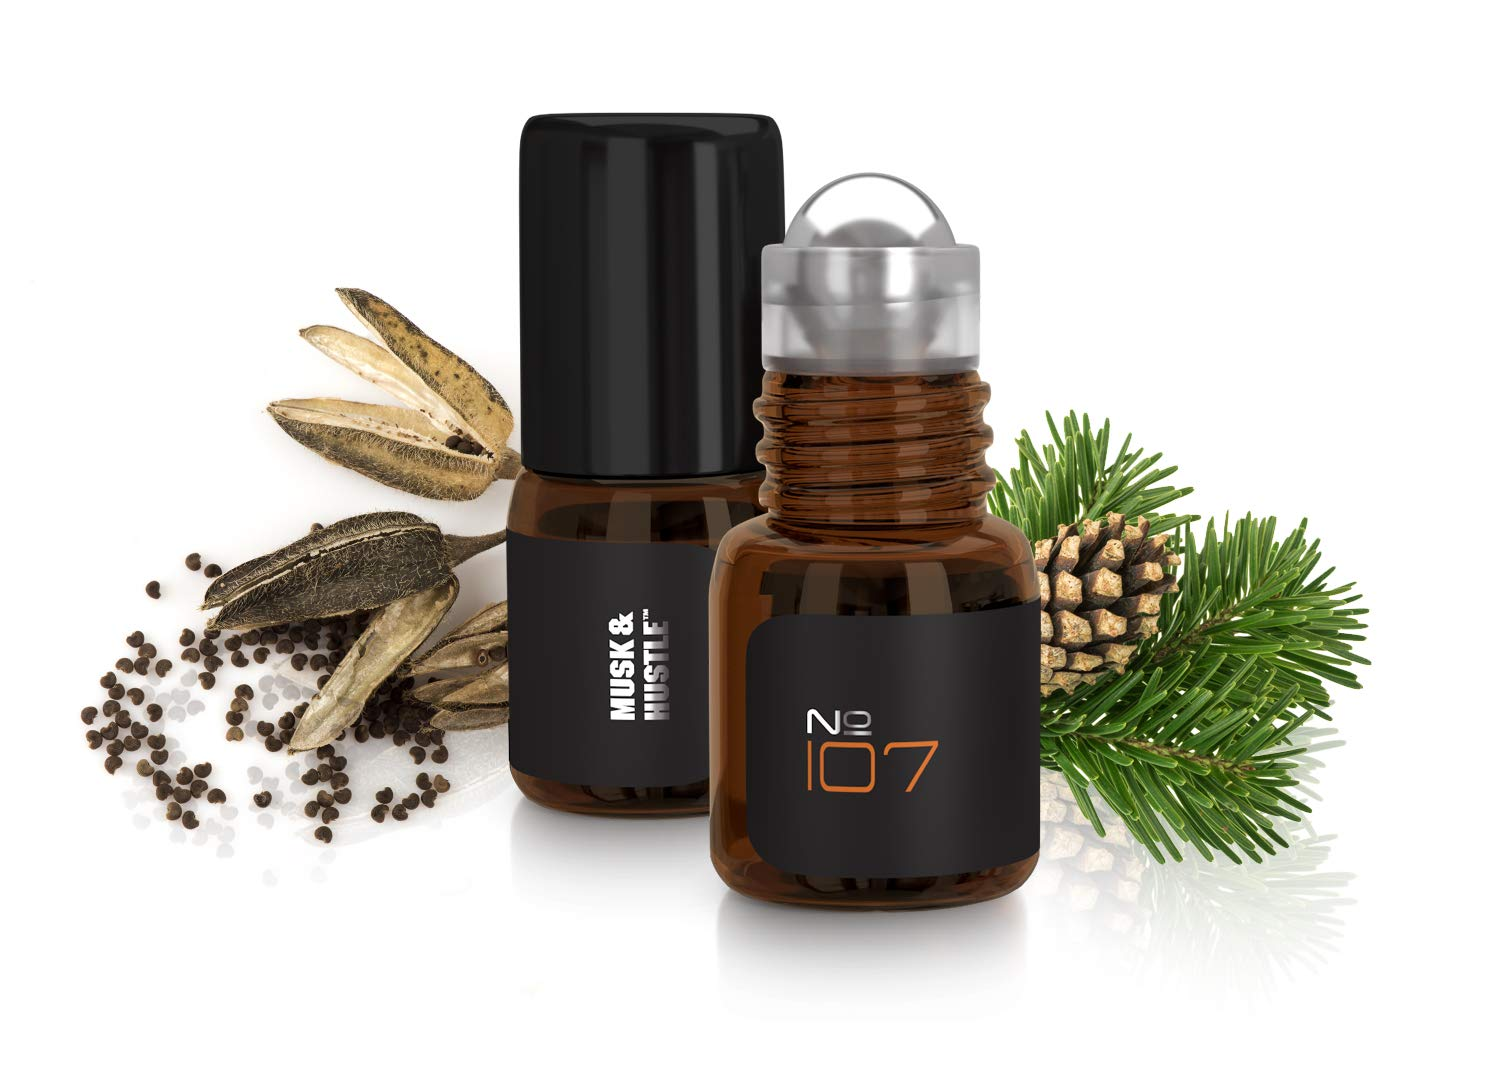 Original Nitro Musk creation of Abercrombie & Fitch Fierce, Pure Oil Cologne for Men, Less Mess & More Concentrated than Solid Cologne, Premium Ingredients, Perfect Sample Size or Pocket Carry